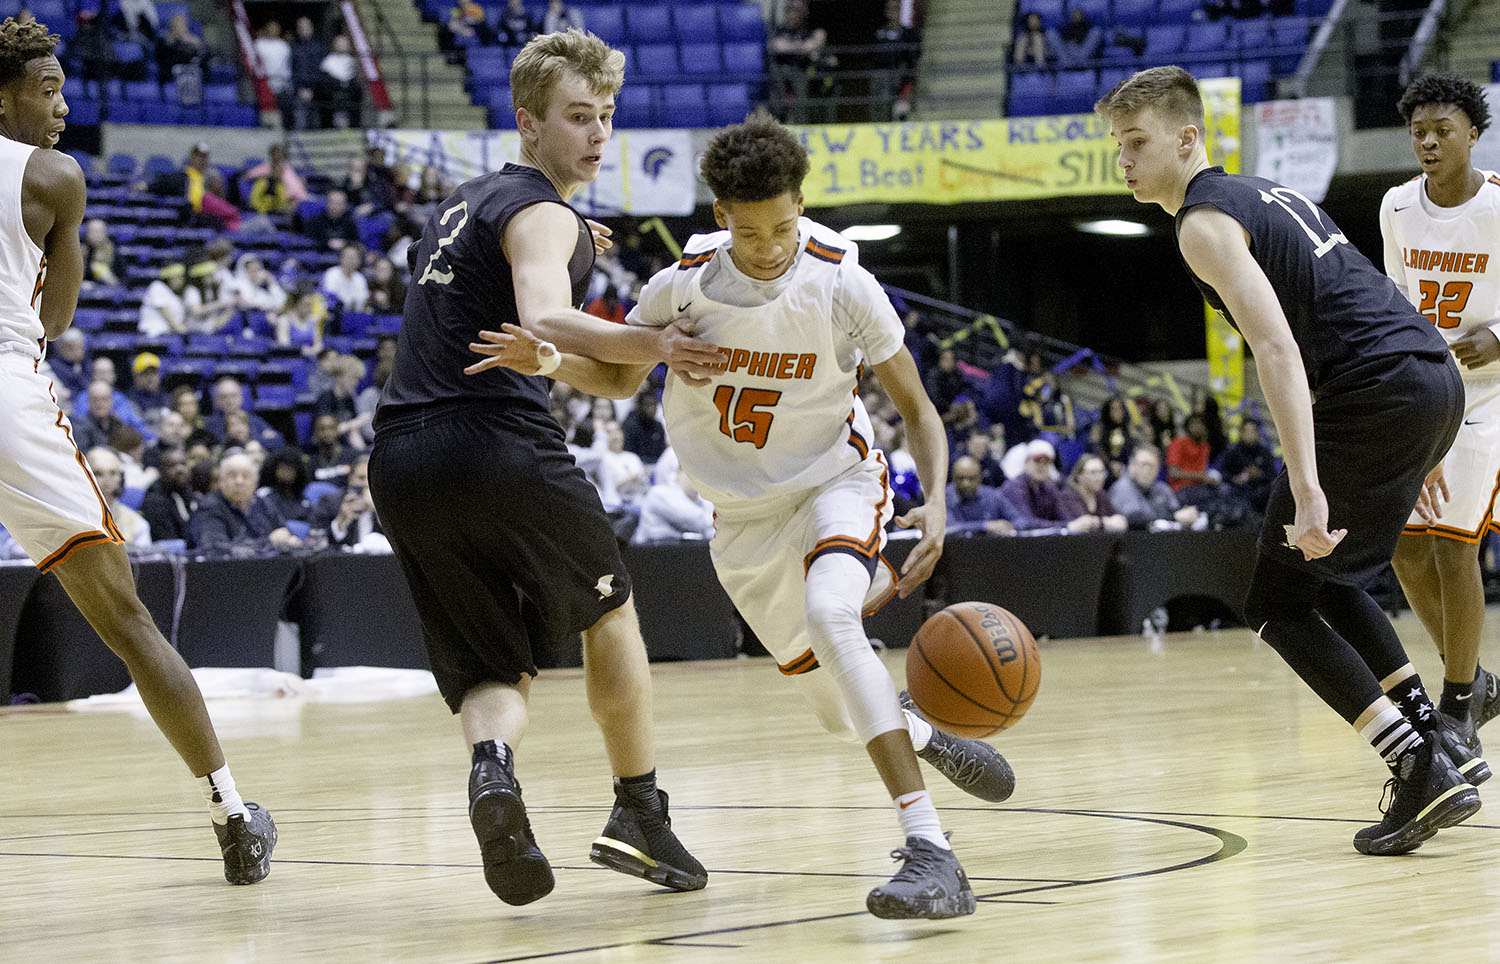 Lanphier's Maki Rose drives past Sacred Heart-Griffin's Joe Gustafson during the Boys City Tournament at the Bank of Springfield Center Thursday, Jan. 17, 2019.  [Ted Schurter/The State Journal-Register]